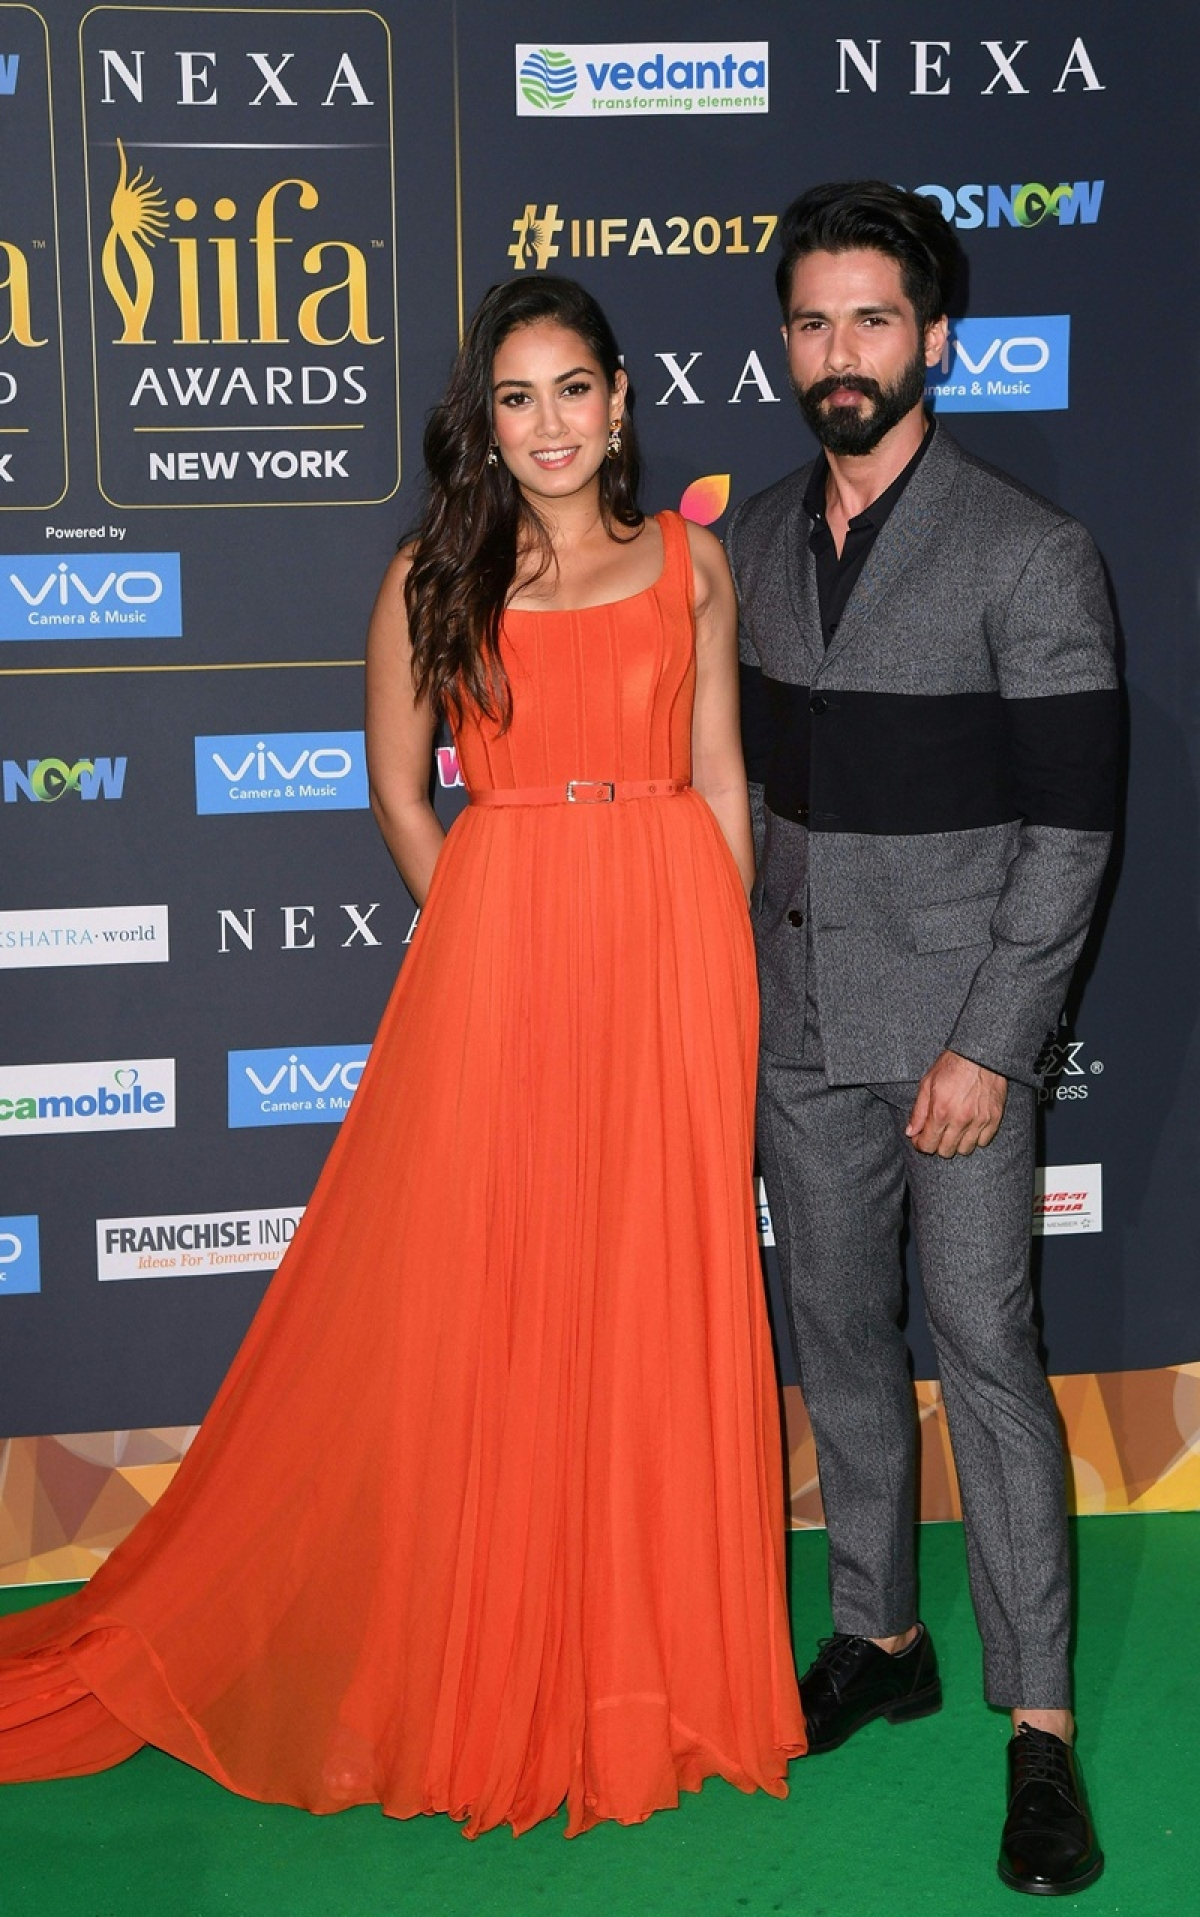 Bollywood actor Shahid Kapoor and wife Mira Rajput arrive for the IIFA Awards July 15, 2017 at the MetLife Stadium in East Rutherford, New Jersey during the 18th International Indian Film Academy (IIFA) Festival. / AFP PHOTO / ANGELA WEISS